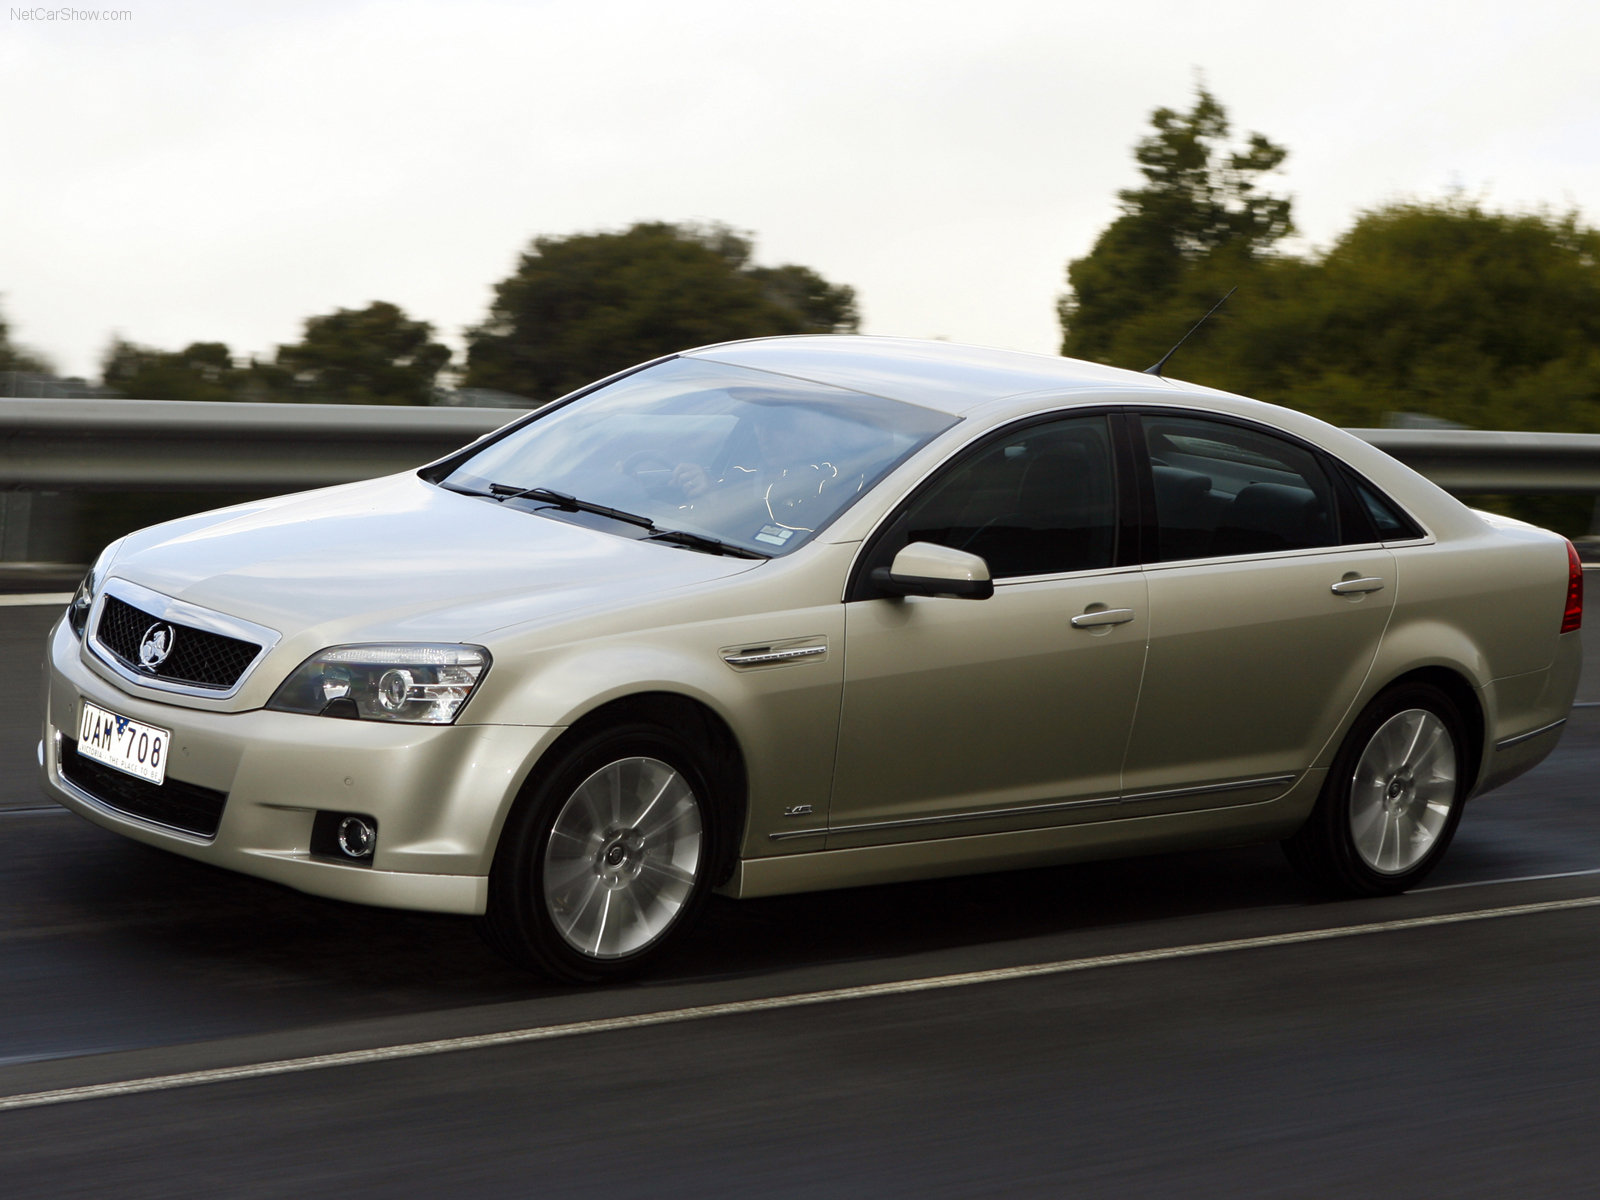 Holden WM Caprice photo 38314